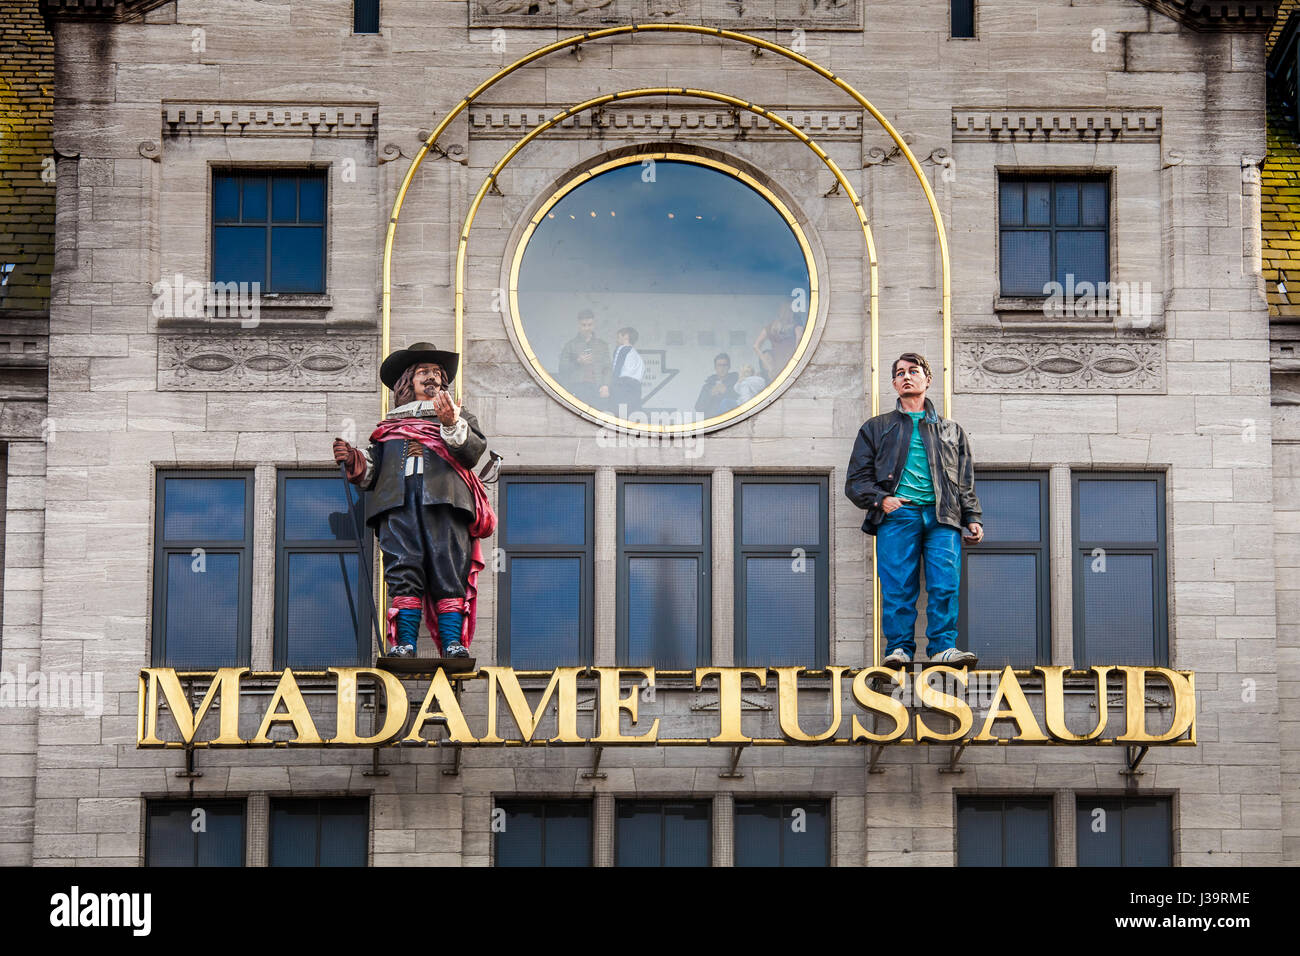 Entrance sign on the building of Madame Tussaud Museum in Amsterdam, Netherlands - Stock Image